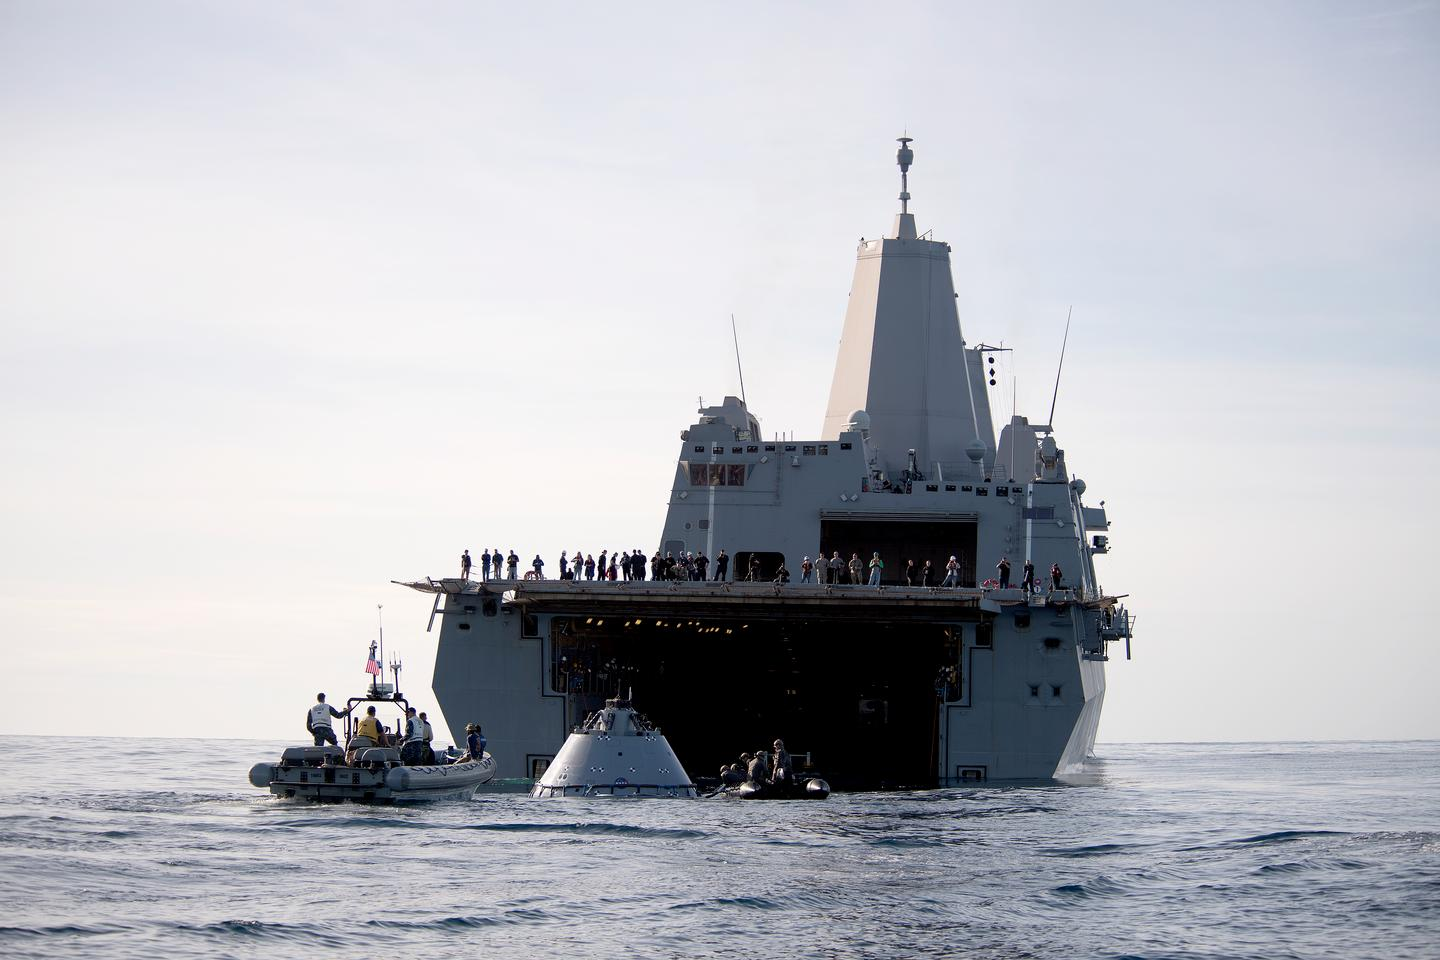 The Orion test capsule being guided into the well of USS Anchorage